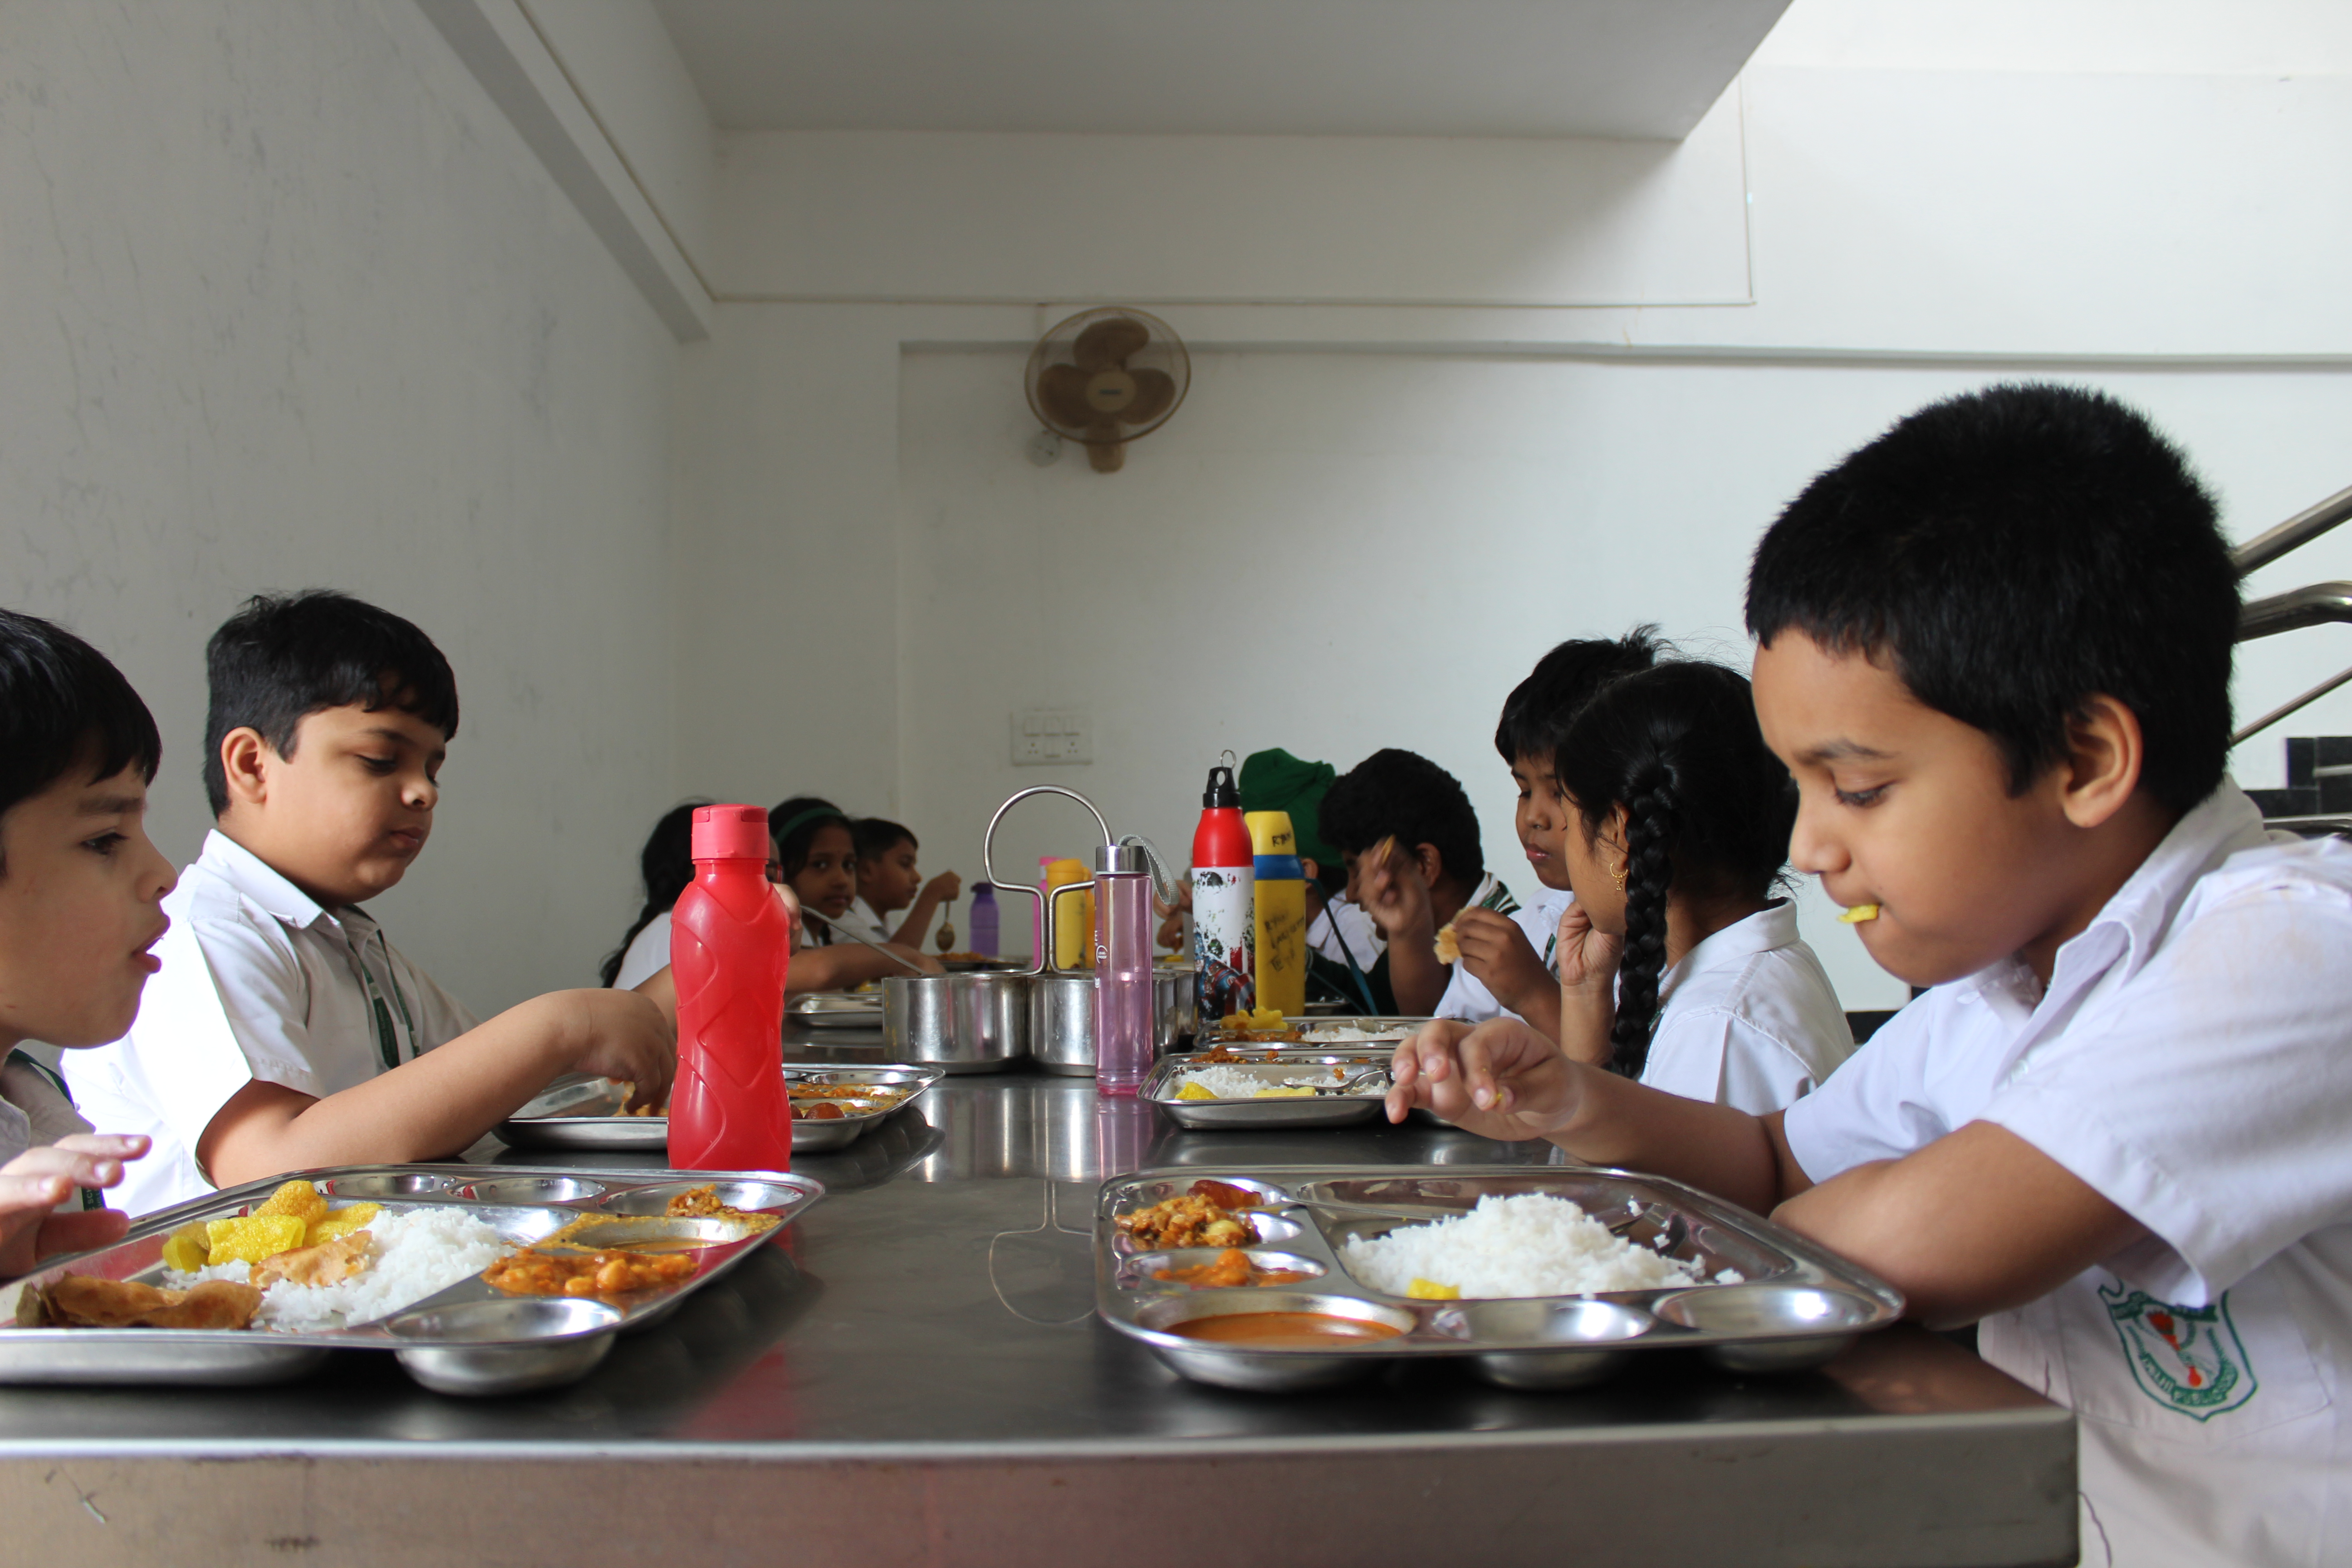 Students eating their lunch in mess